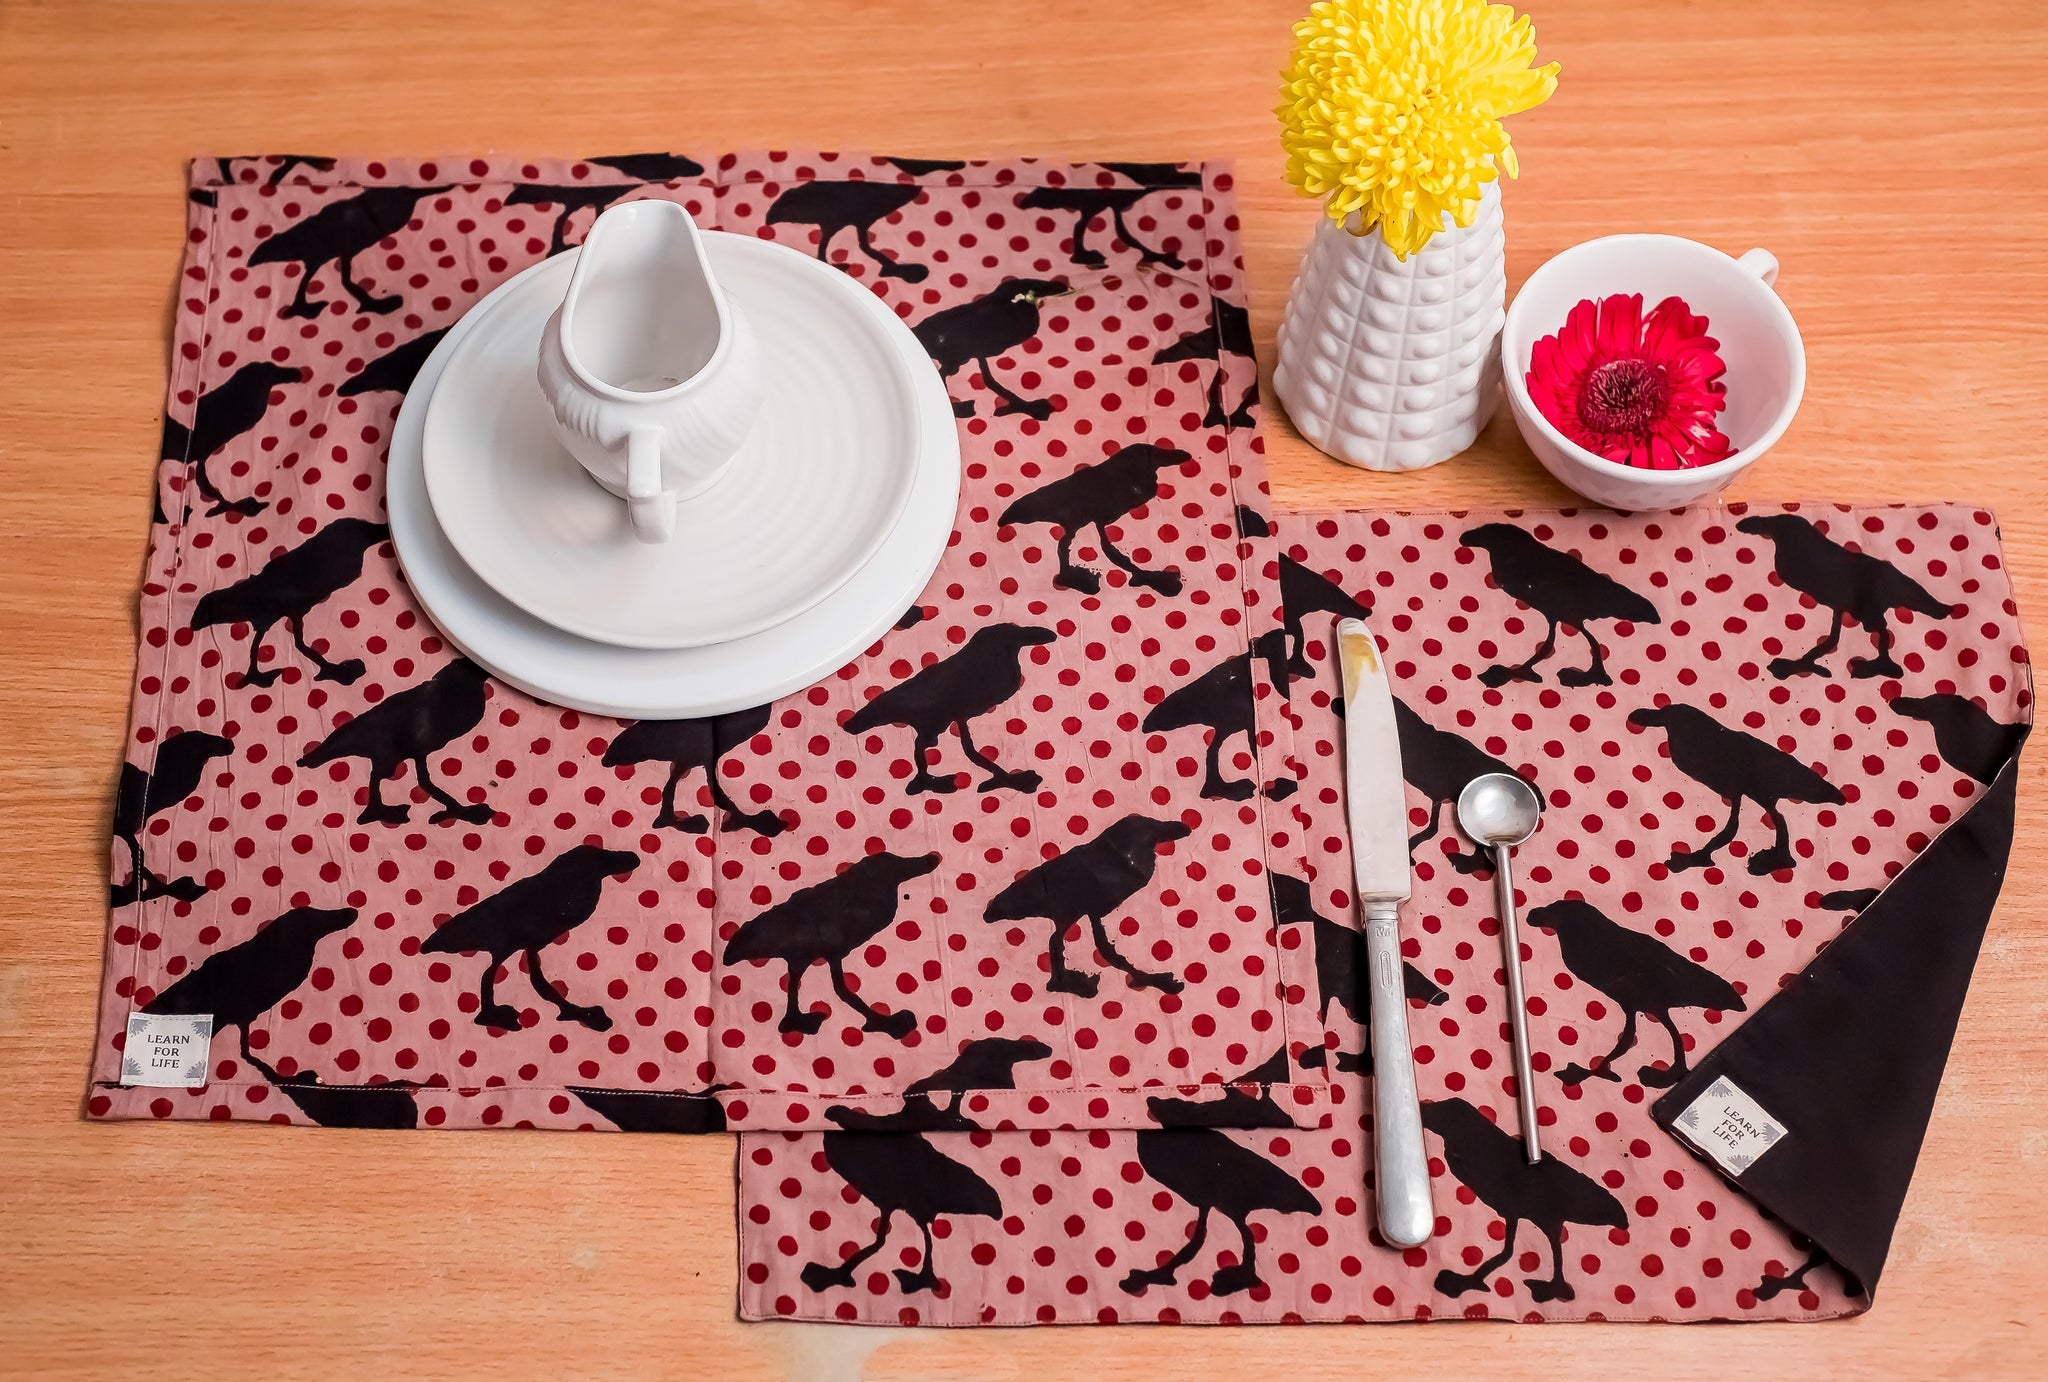 Table Set with Natural Dye- Crows Motif Hand Block Printed Cotton